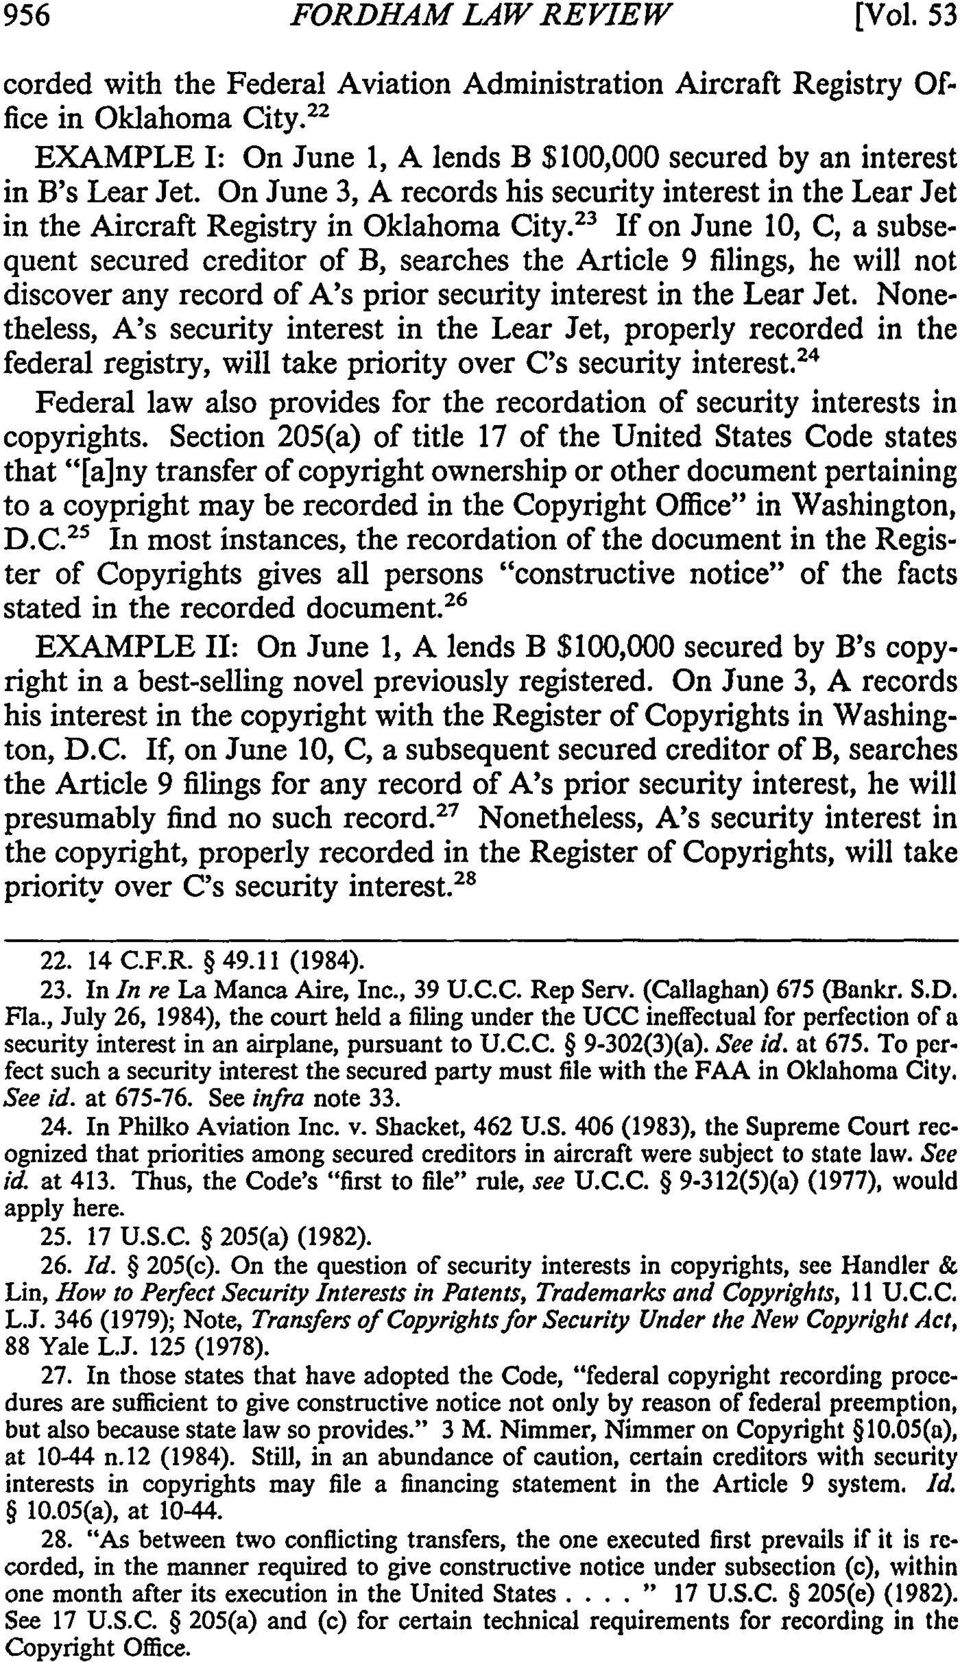 23 If on June 10, C, a subsequent secured creditor of B, searches the Article 9 filings, he will not discover any record of A's prior security interest in the Lear Jet.